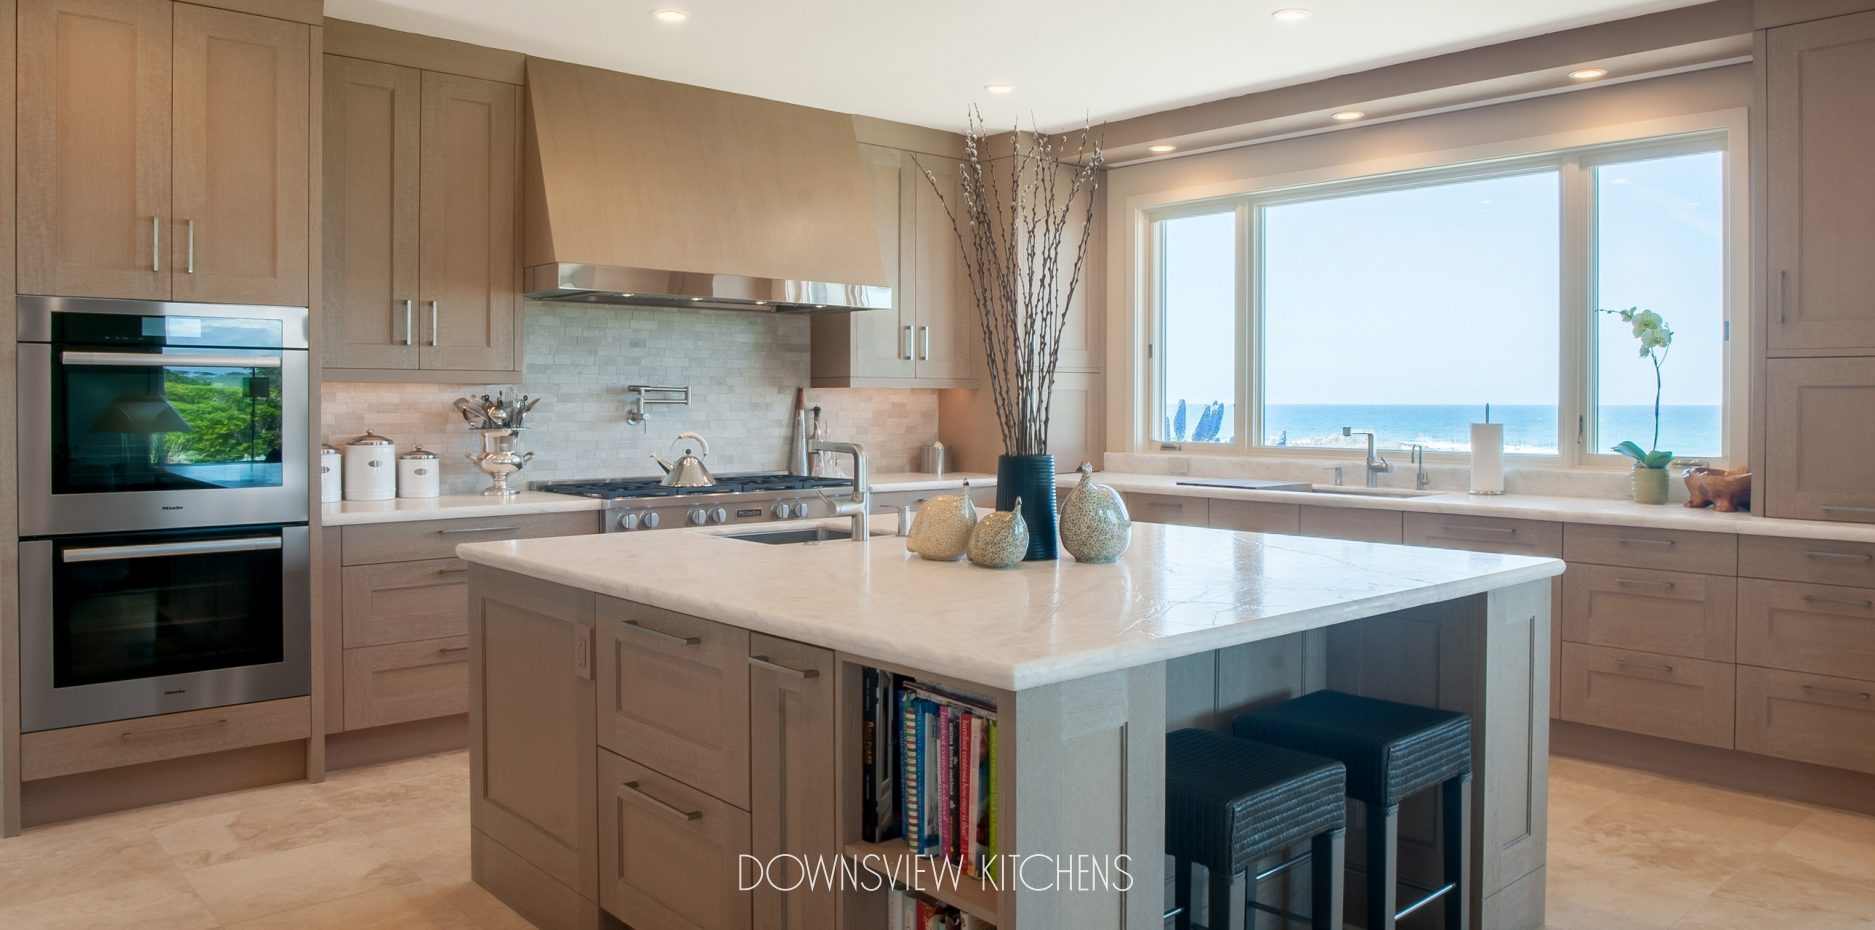 PEBBLE BEACH SETTING - Downsview Kitchens and Fine Custom Cabinetry ...